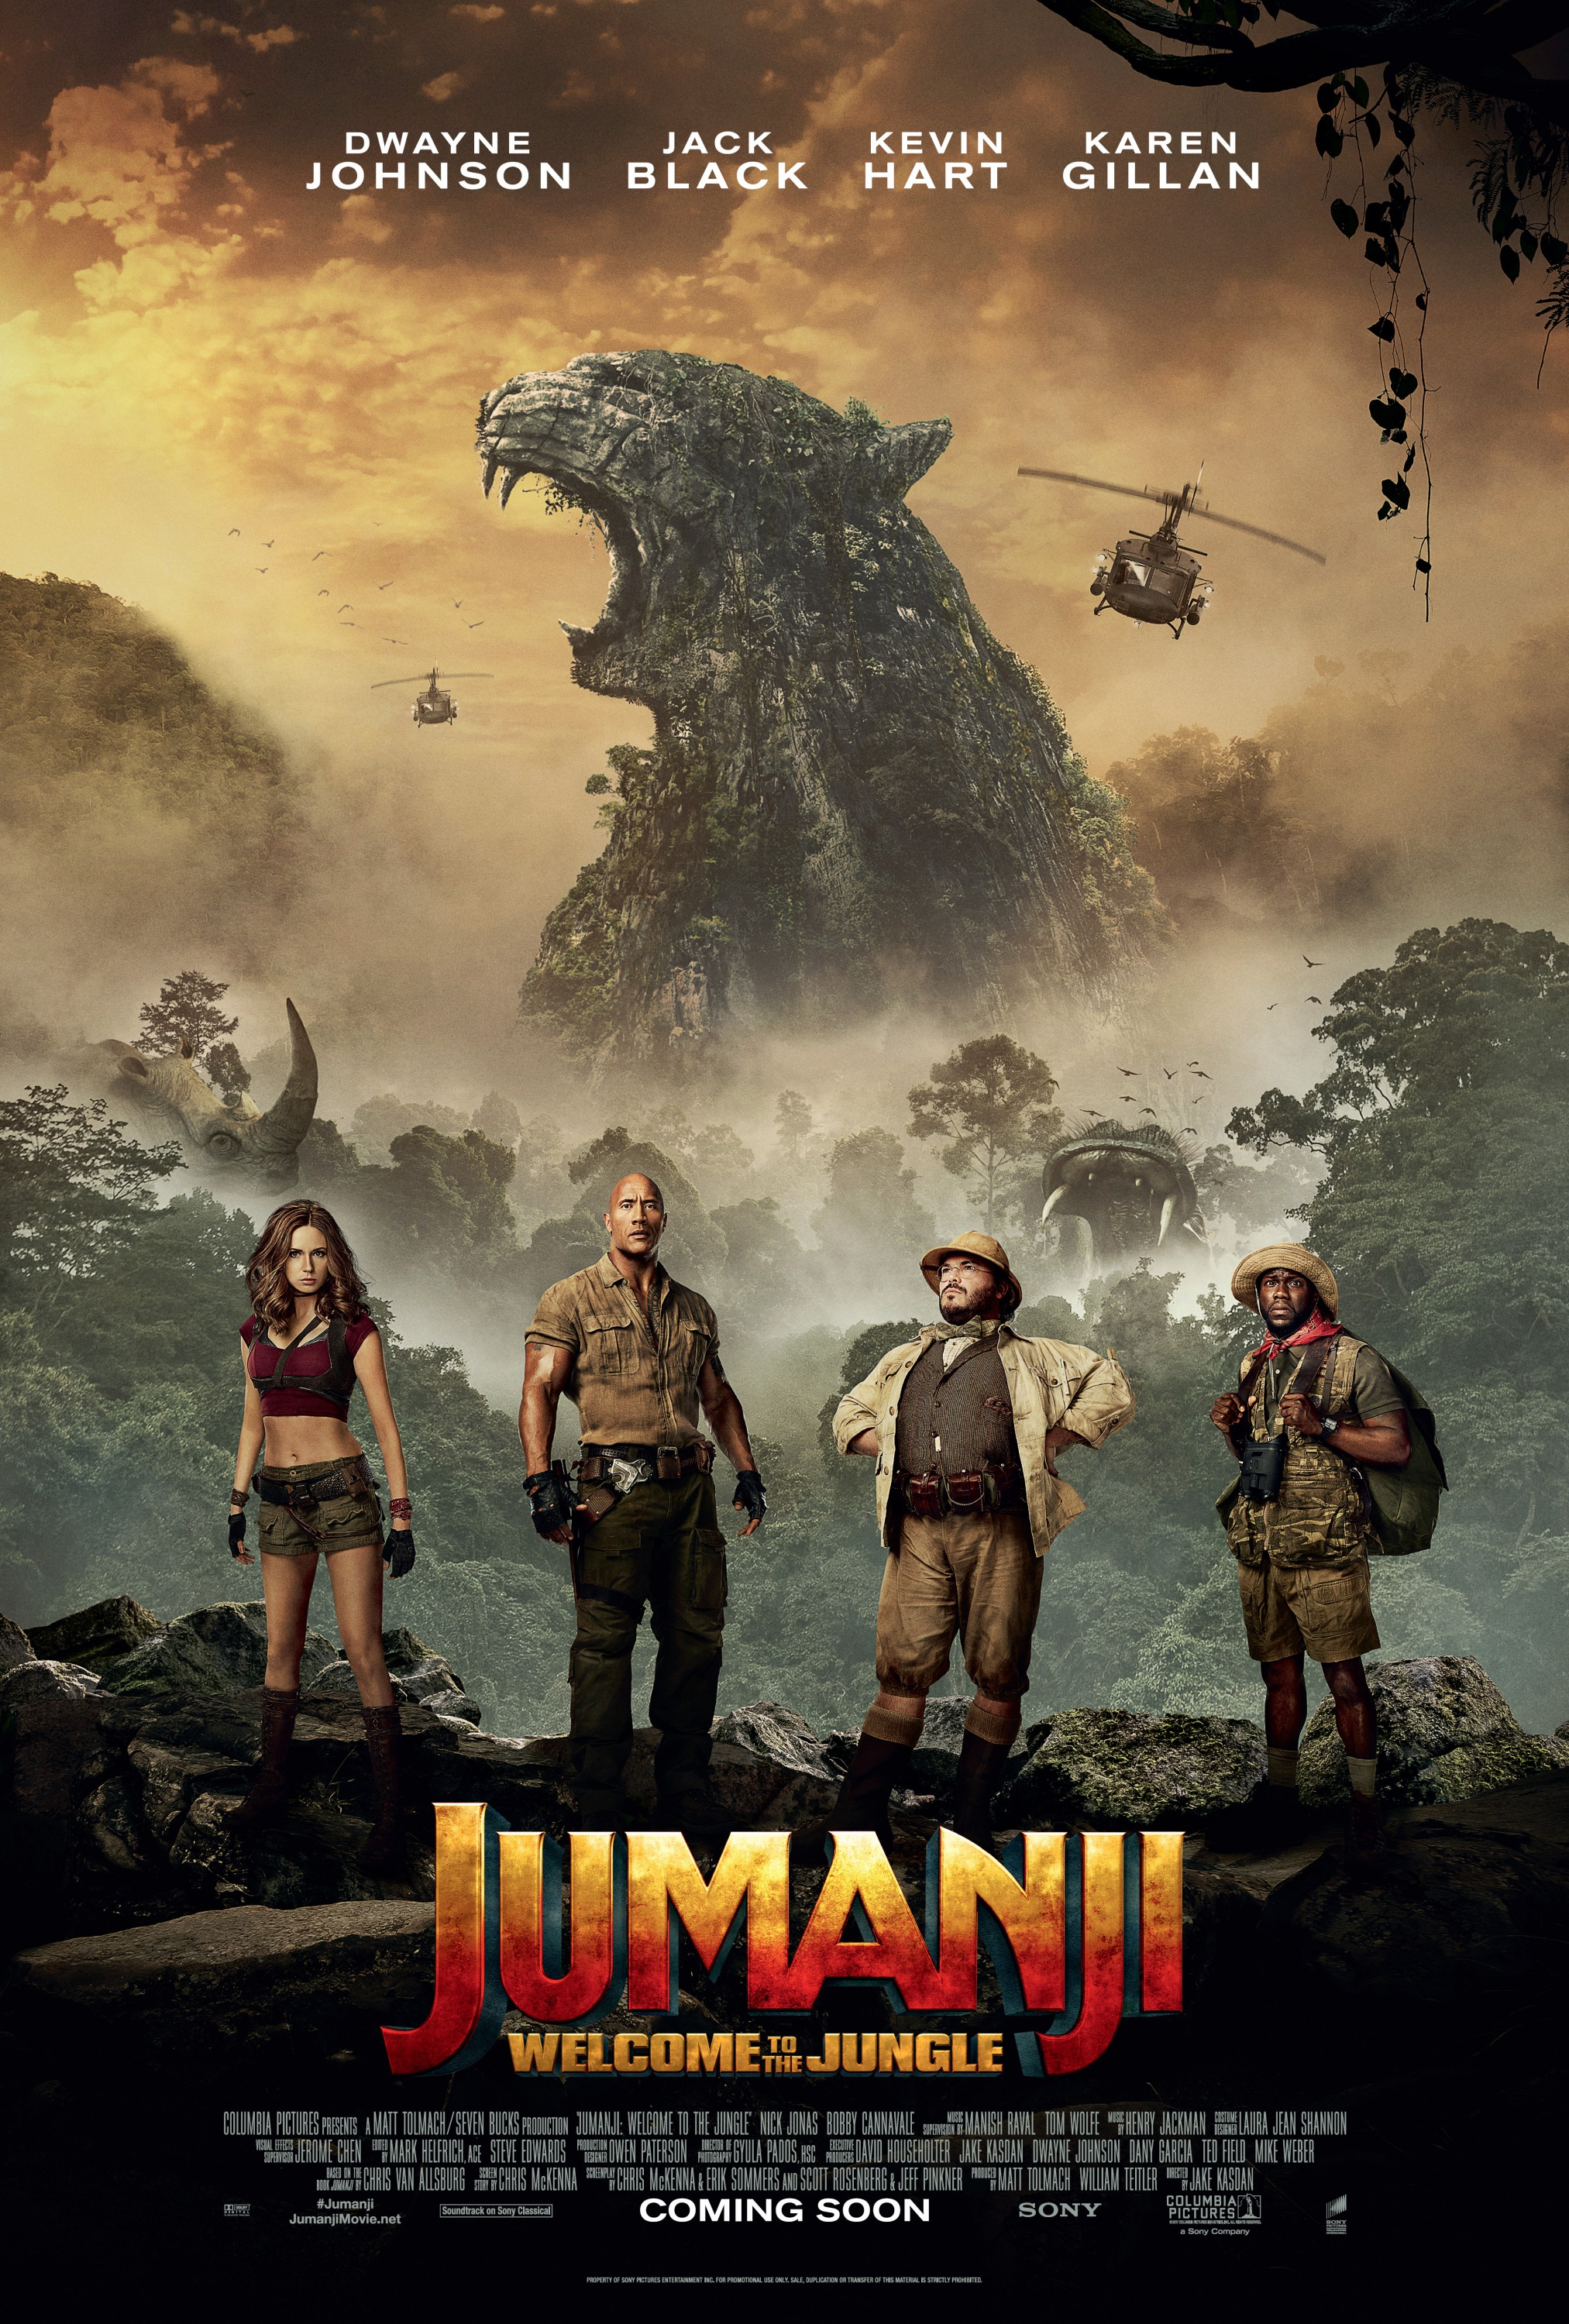 Jumanji images Jumanji Welcome to the Jungle 2017 Poster HD 2025x3000